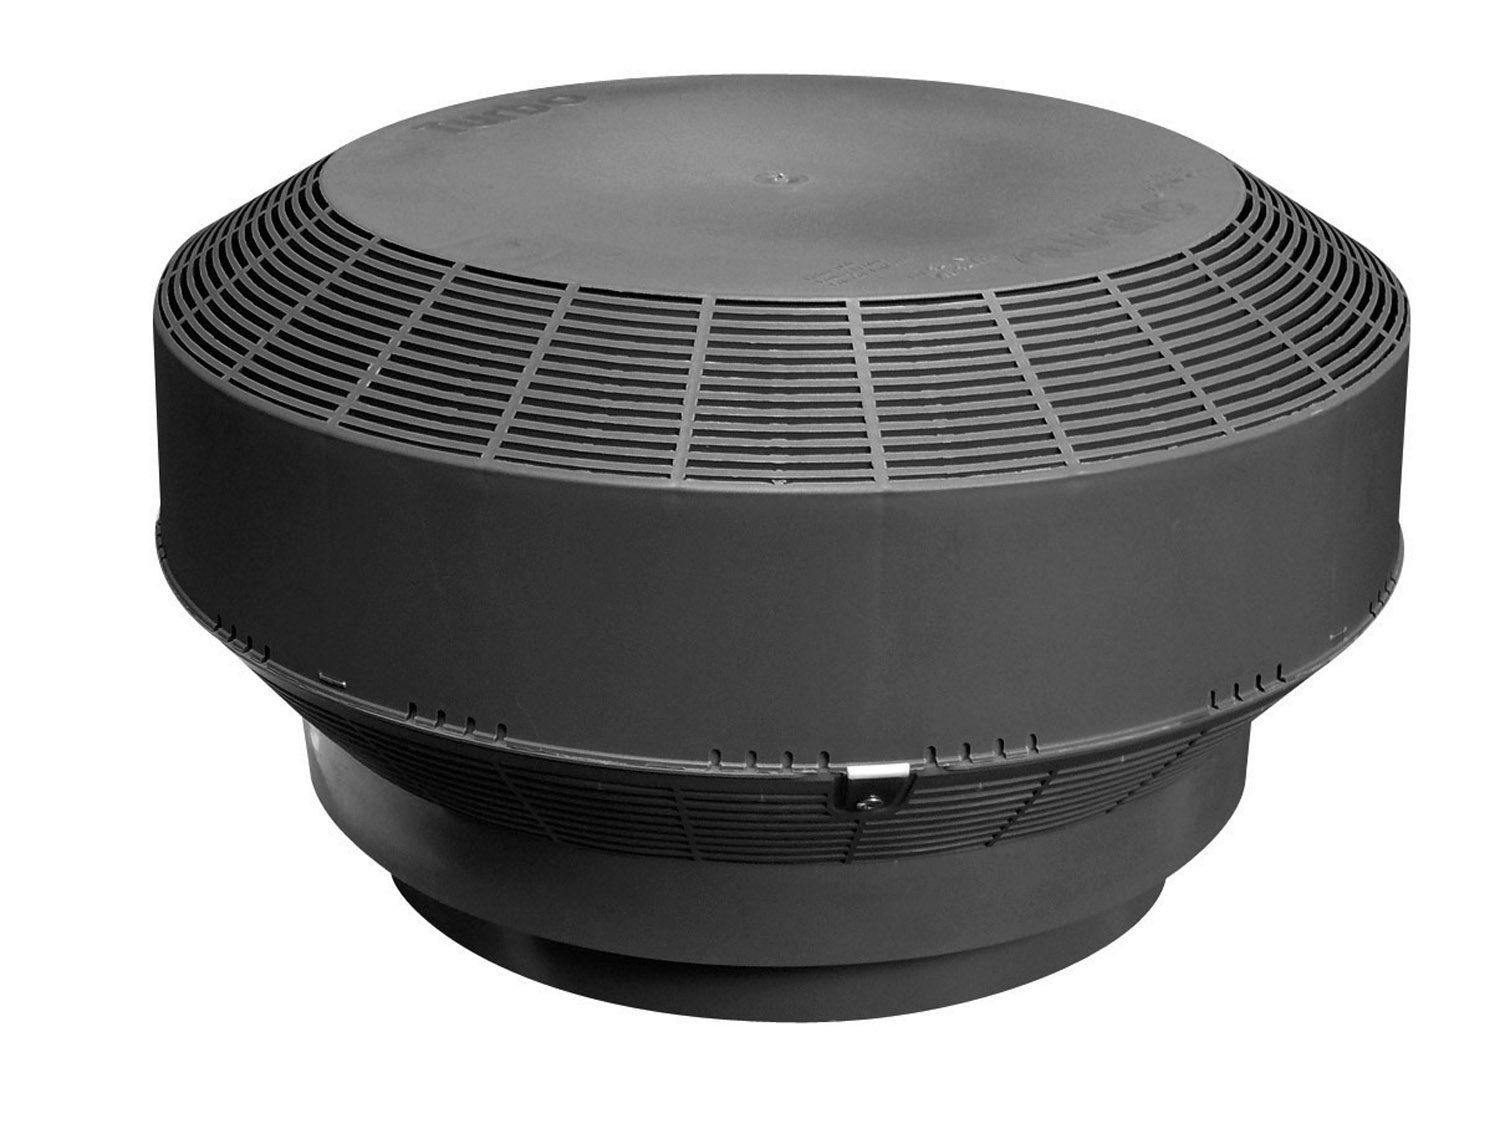 Duraflo 6001bl Weatherpro Turbo Retro Fit Cap You Can Find More Details By Visiting The Image Link Roof Vents Gable Vents Corrugated Plastic Roofing